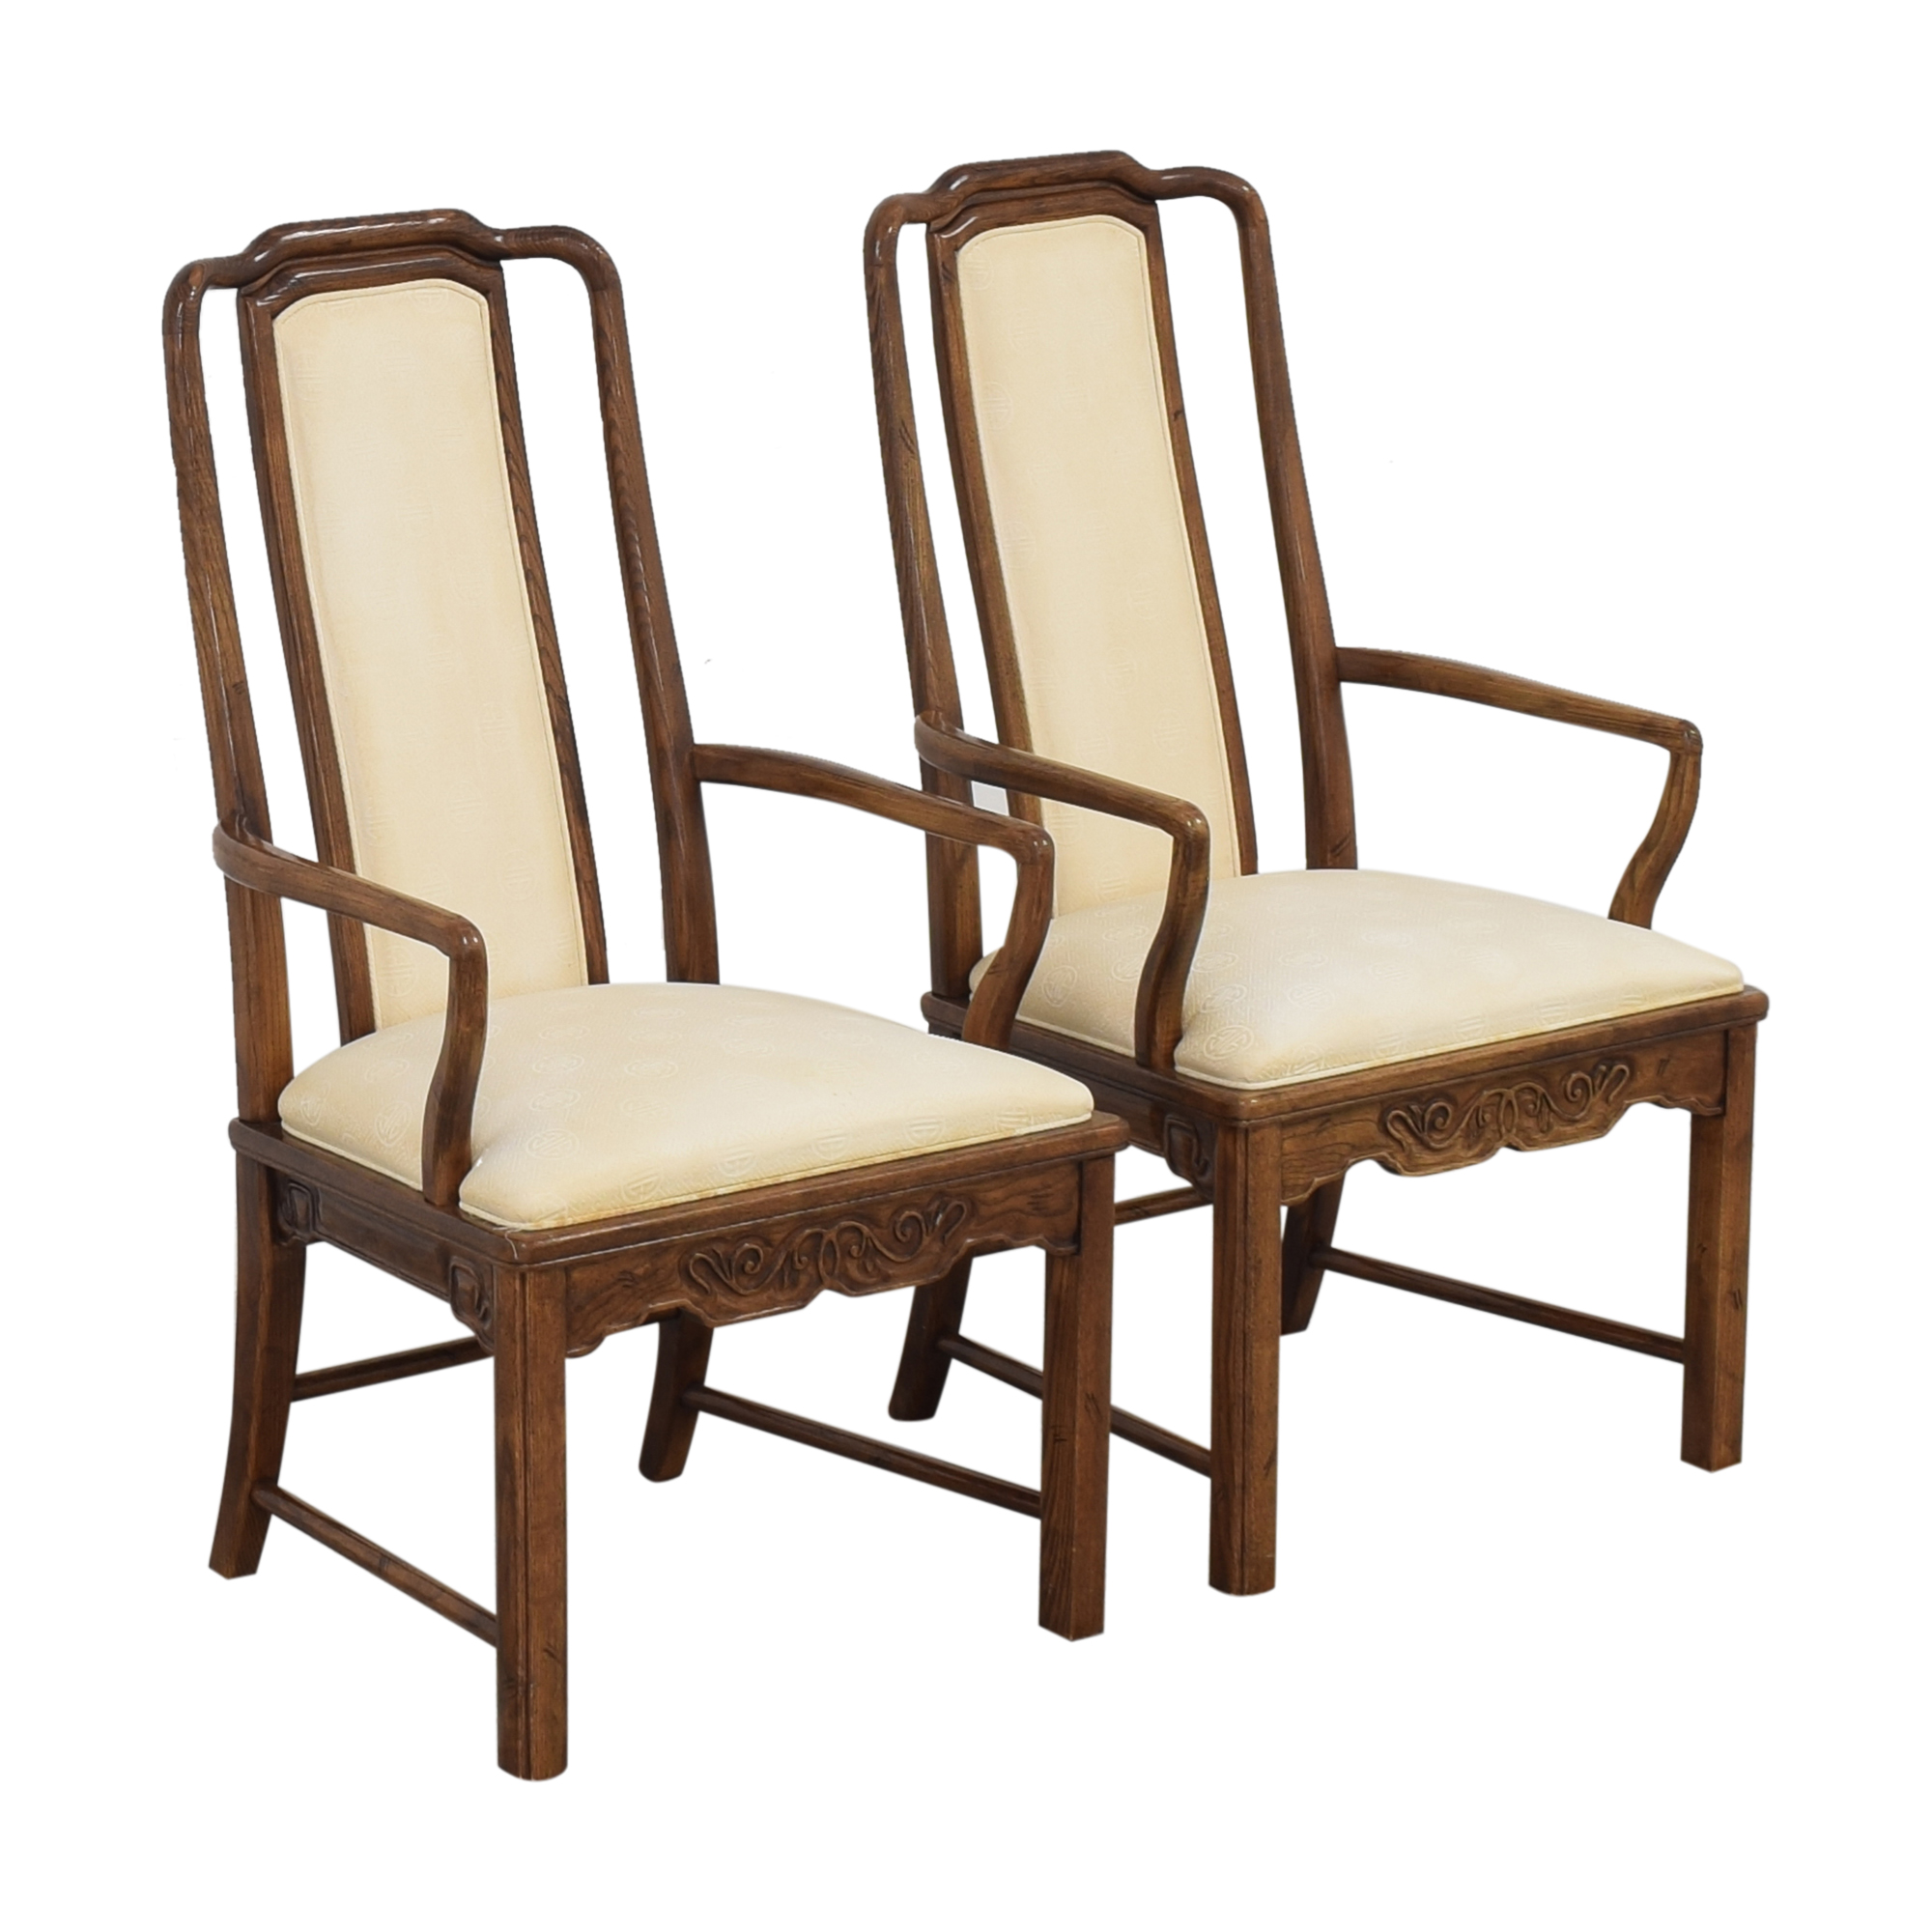 Unique Furniture Makers Unique Furniture Makers Dining Chairs nj